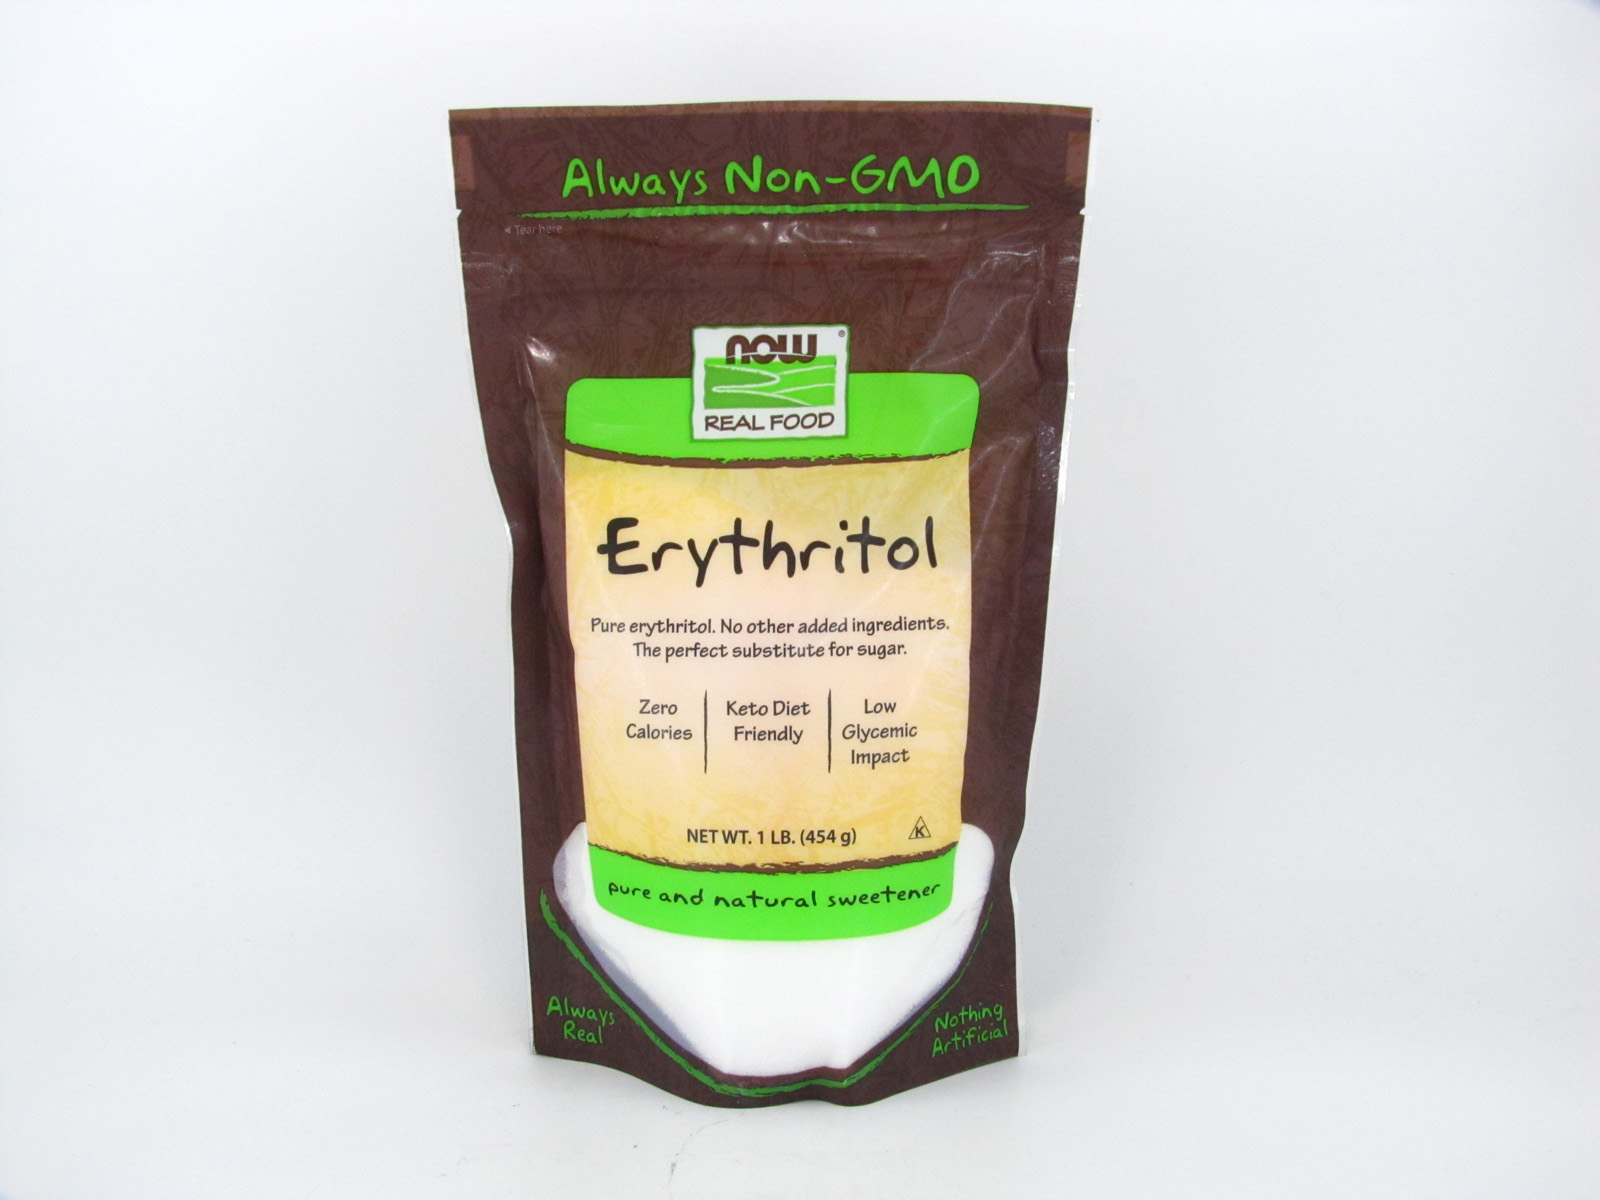 Now - Erythritol (454g) - front view